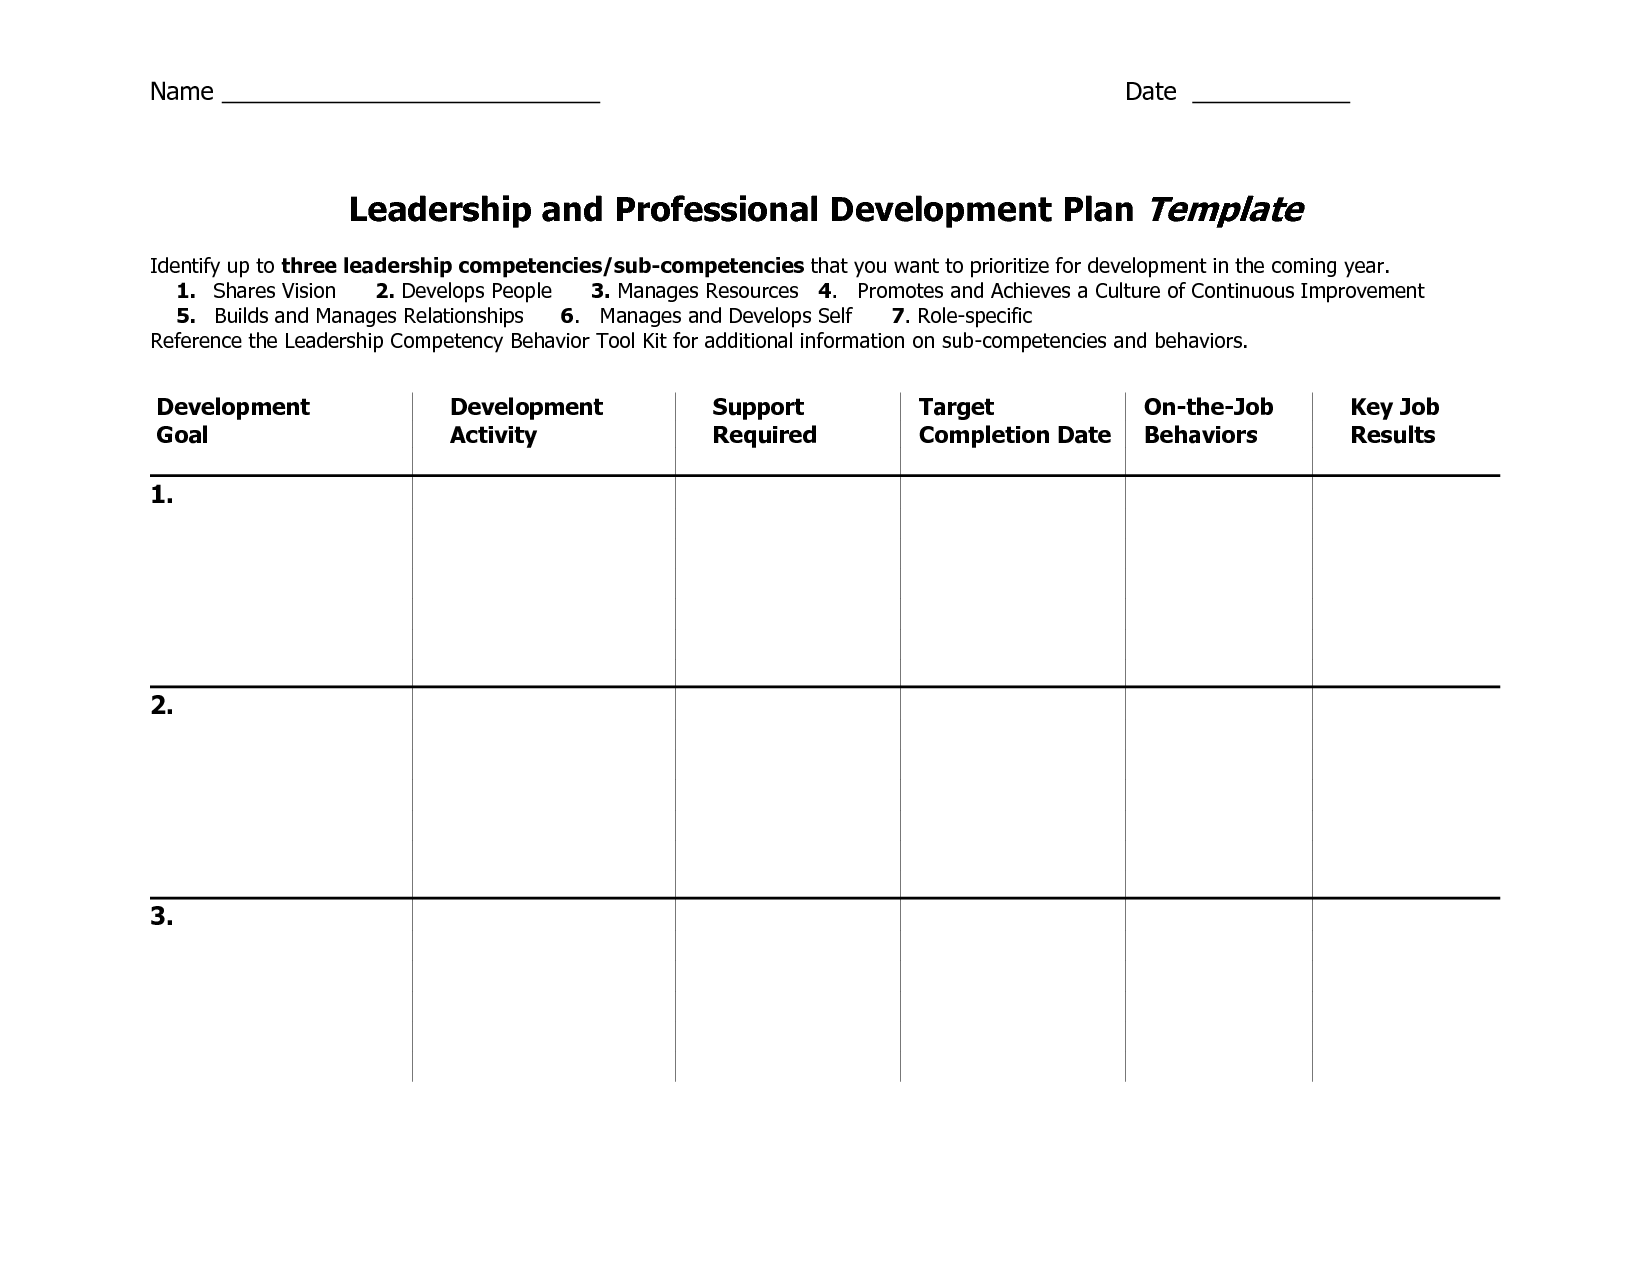 Individual Development Plan Template Word Google Search - Personal business plan template